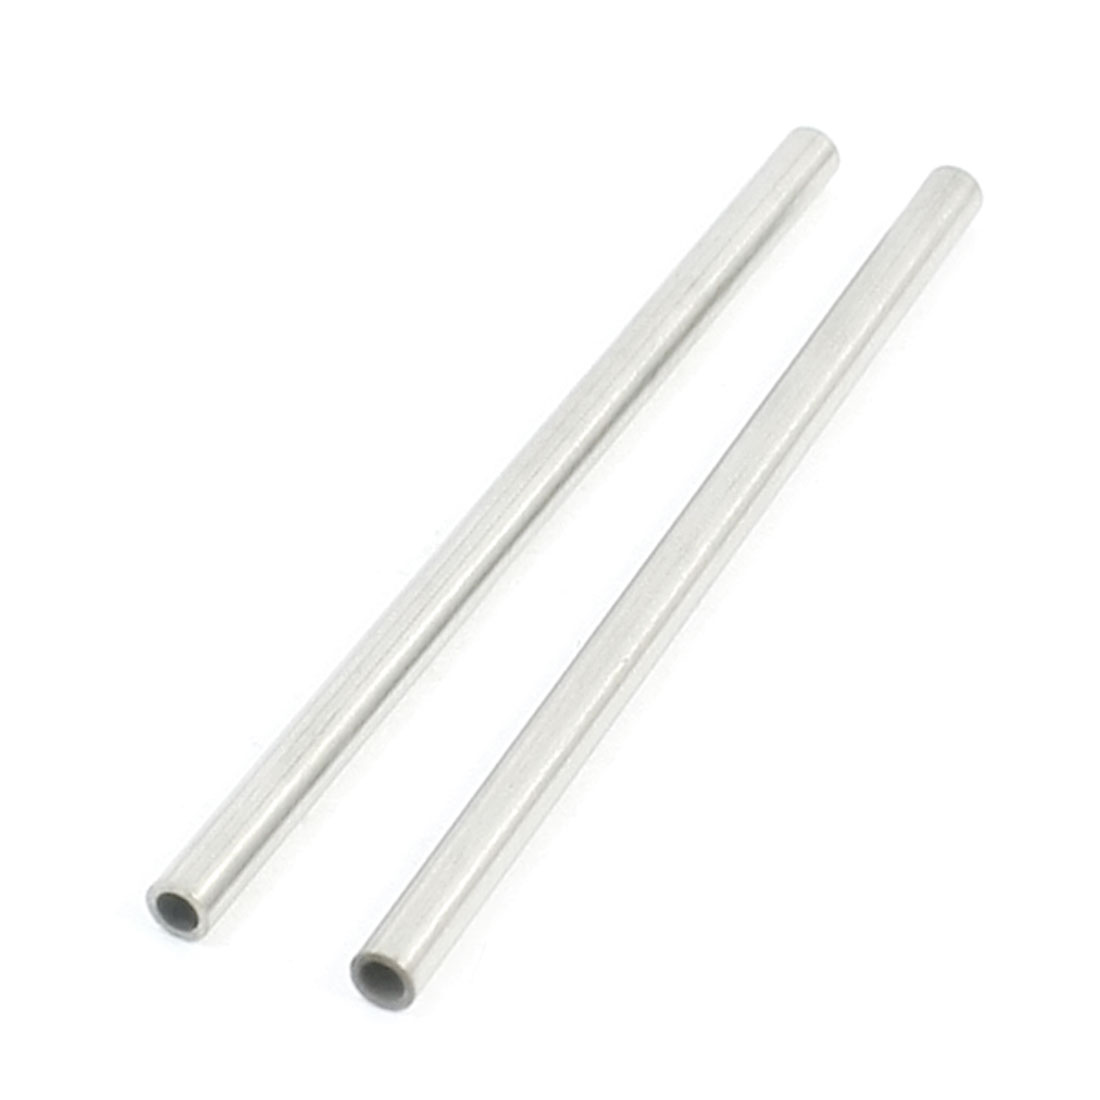 2 Pcs 60mm x 3mm x 2mm Silver Tone Stainless Steel Round Tube Pipe for RC Helicopter Car Model